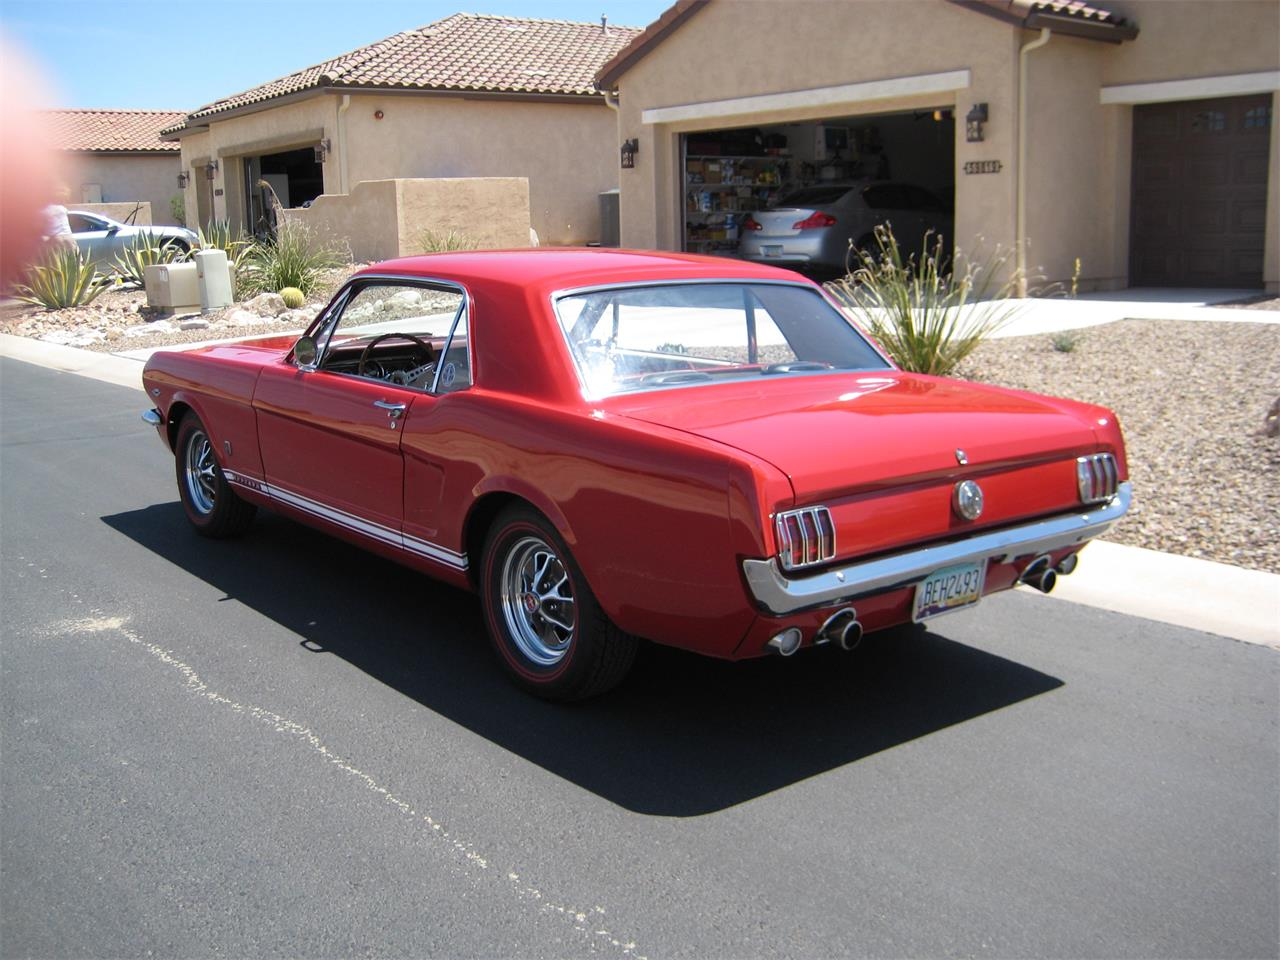 Large Picture of '66 Ford Mustang GT located in Arizona - $40,000.00 Offered by a Private Seller - PSDQ